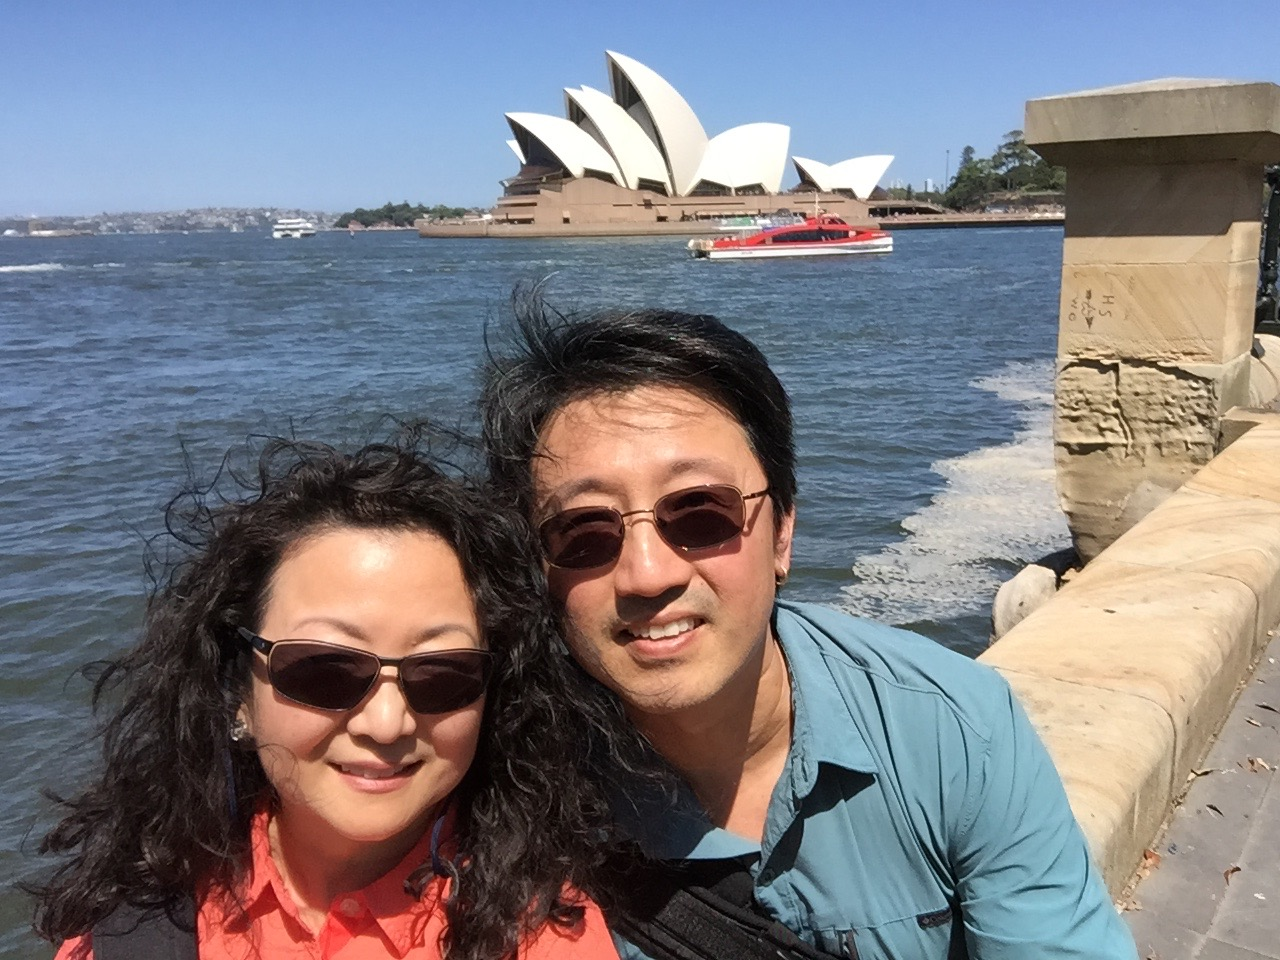 Selfie moment by the Sydney Harbor Bridge